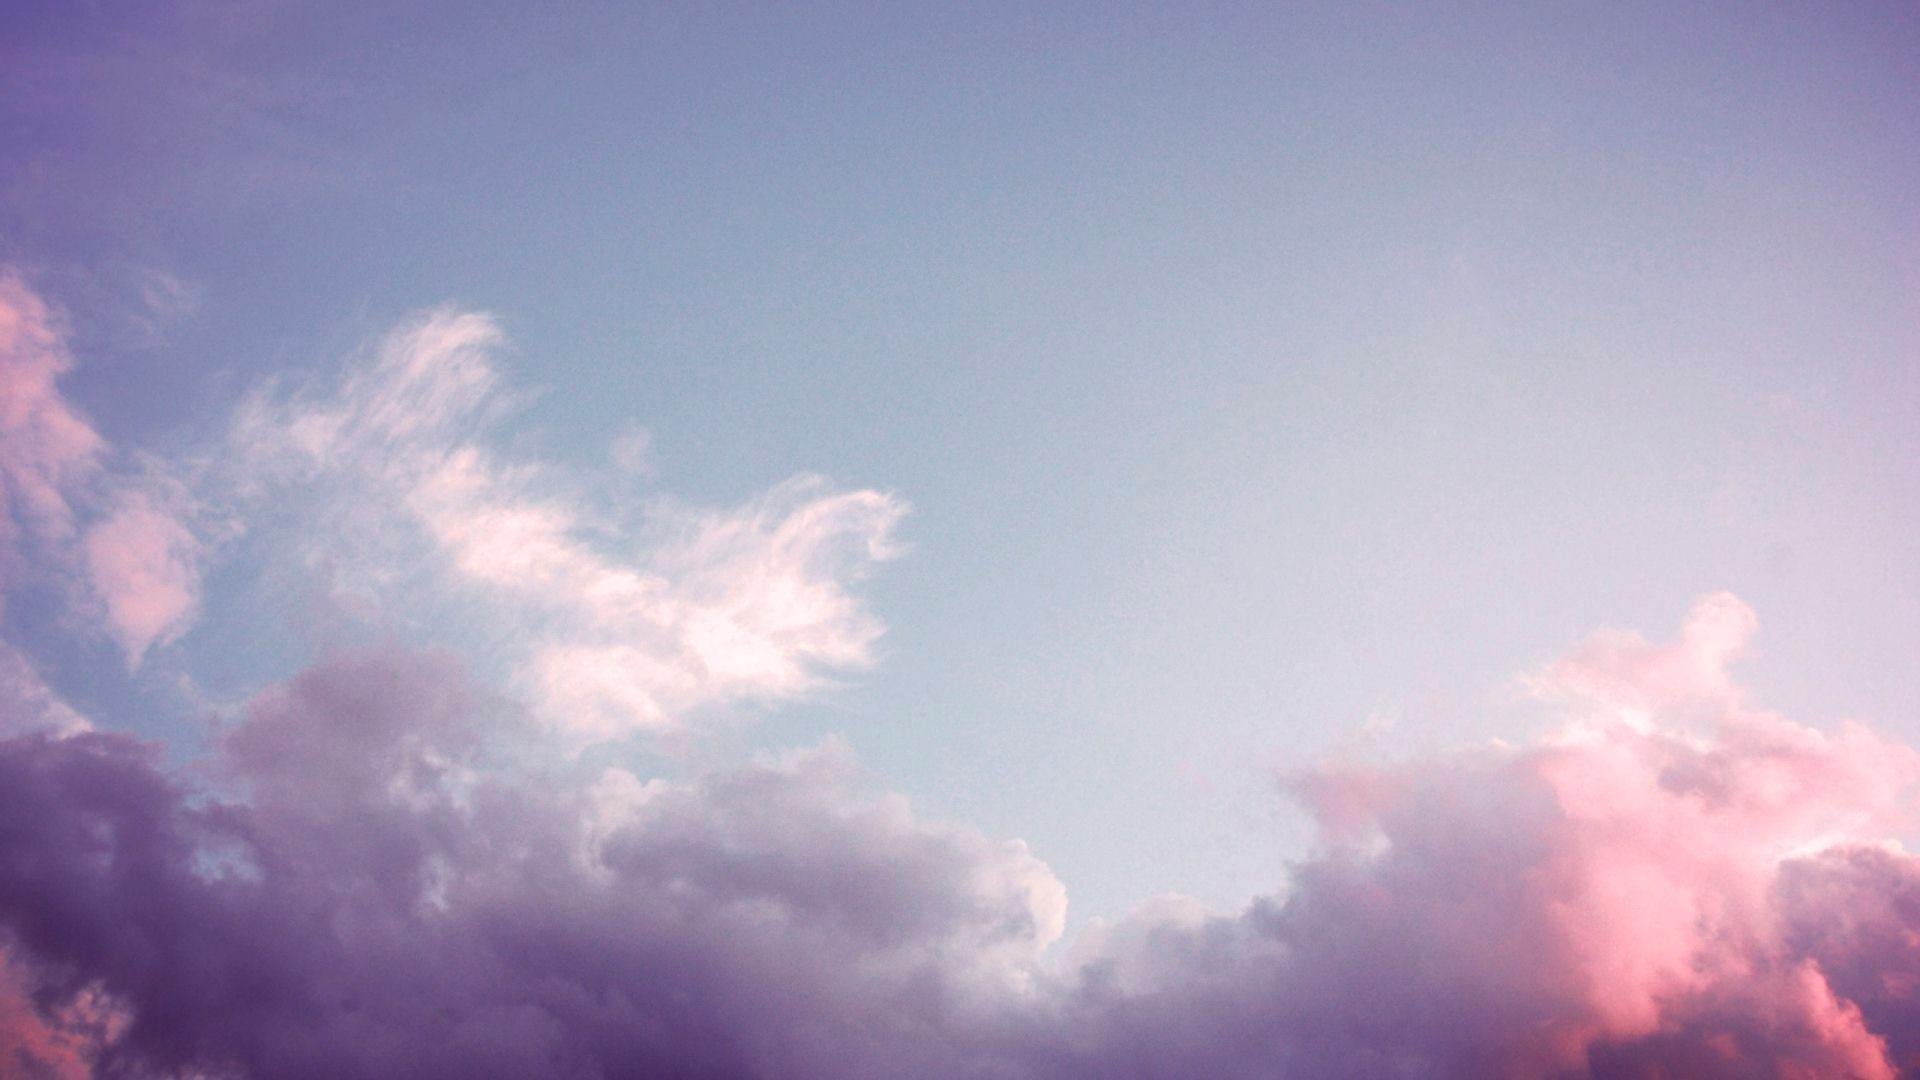 Pastel Pink Aesthetic Wallpapers Wallpaper Cave